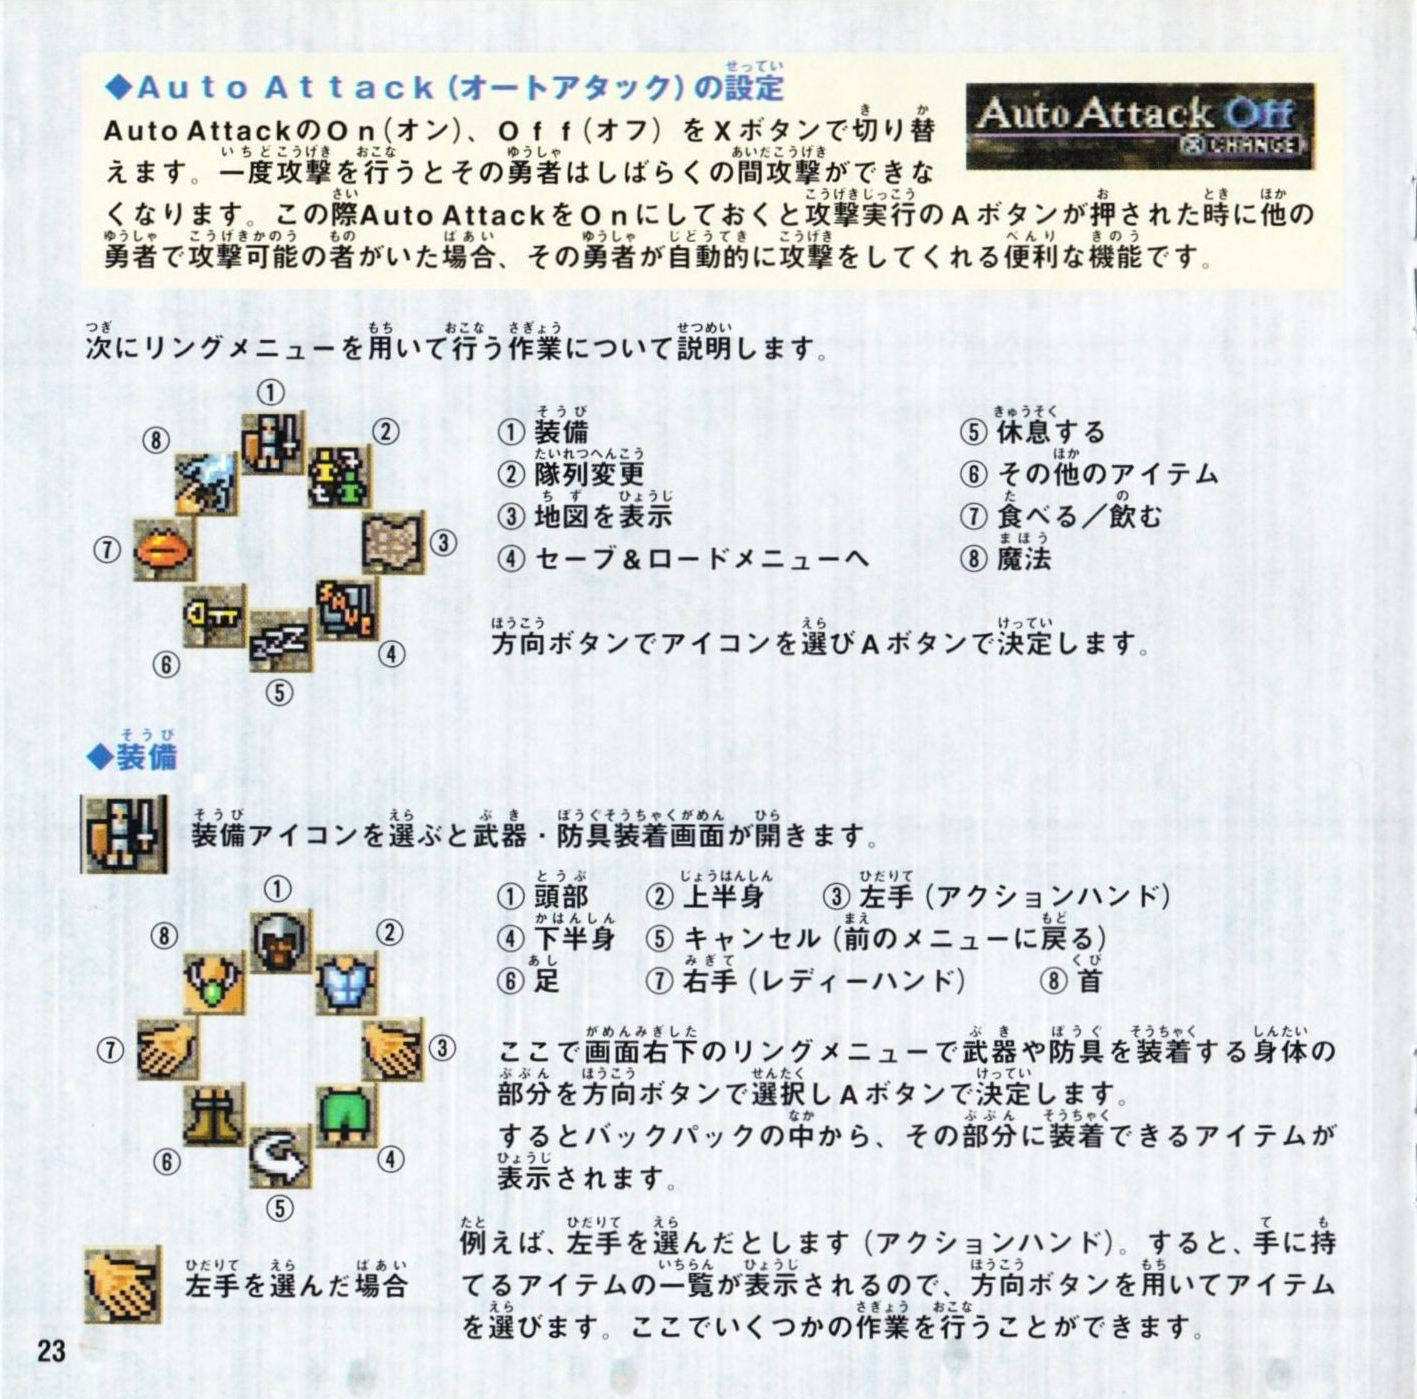 Game - Dungeon Master Nexus - JP - Sega Saturn - Booklet - Page 024 - Scan